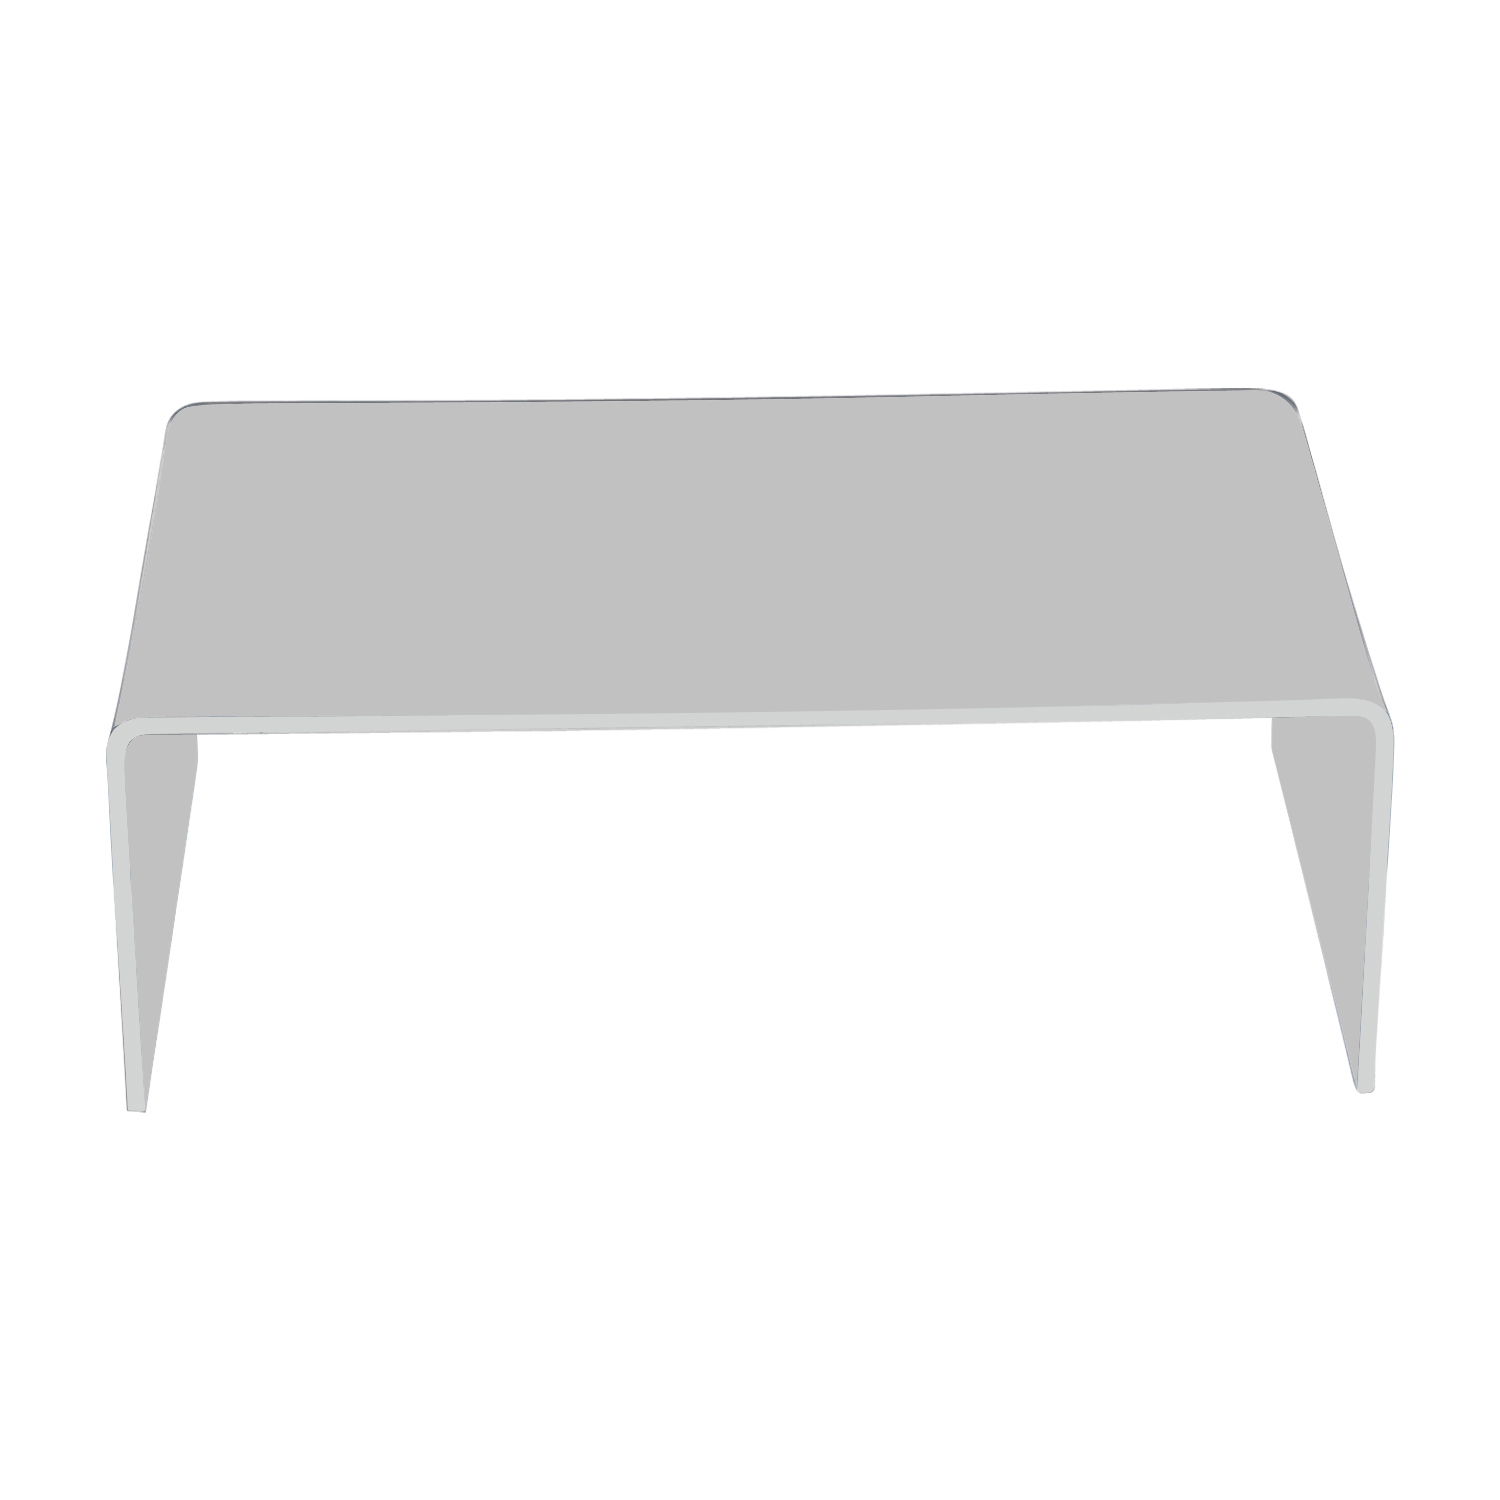 CB2 CB2 Acrylic Coffee Table